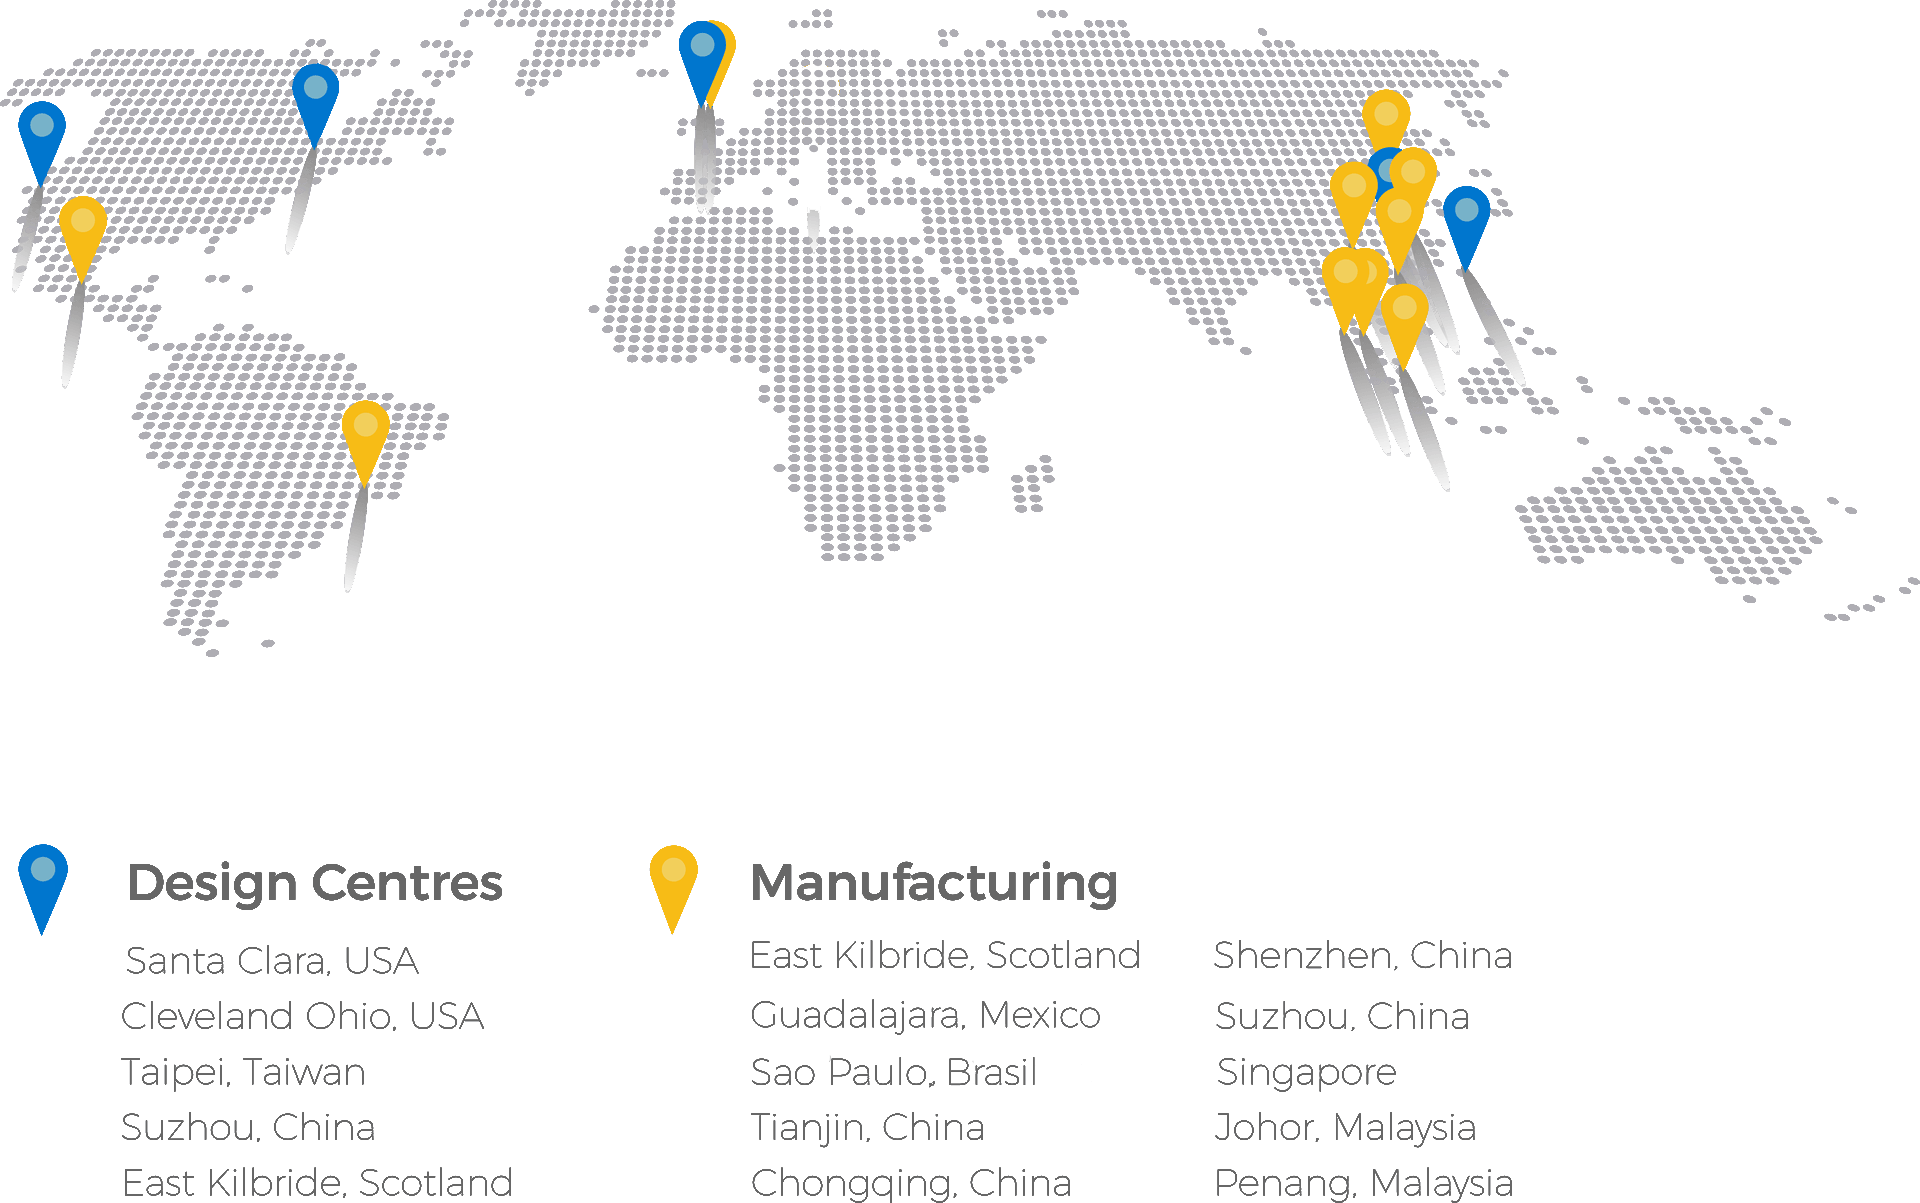 Our Global Footprint of Design Centres and Manufacturing Sites